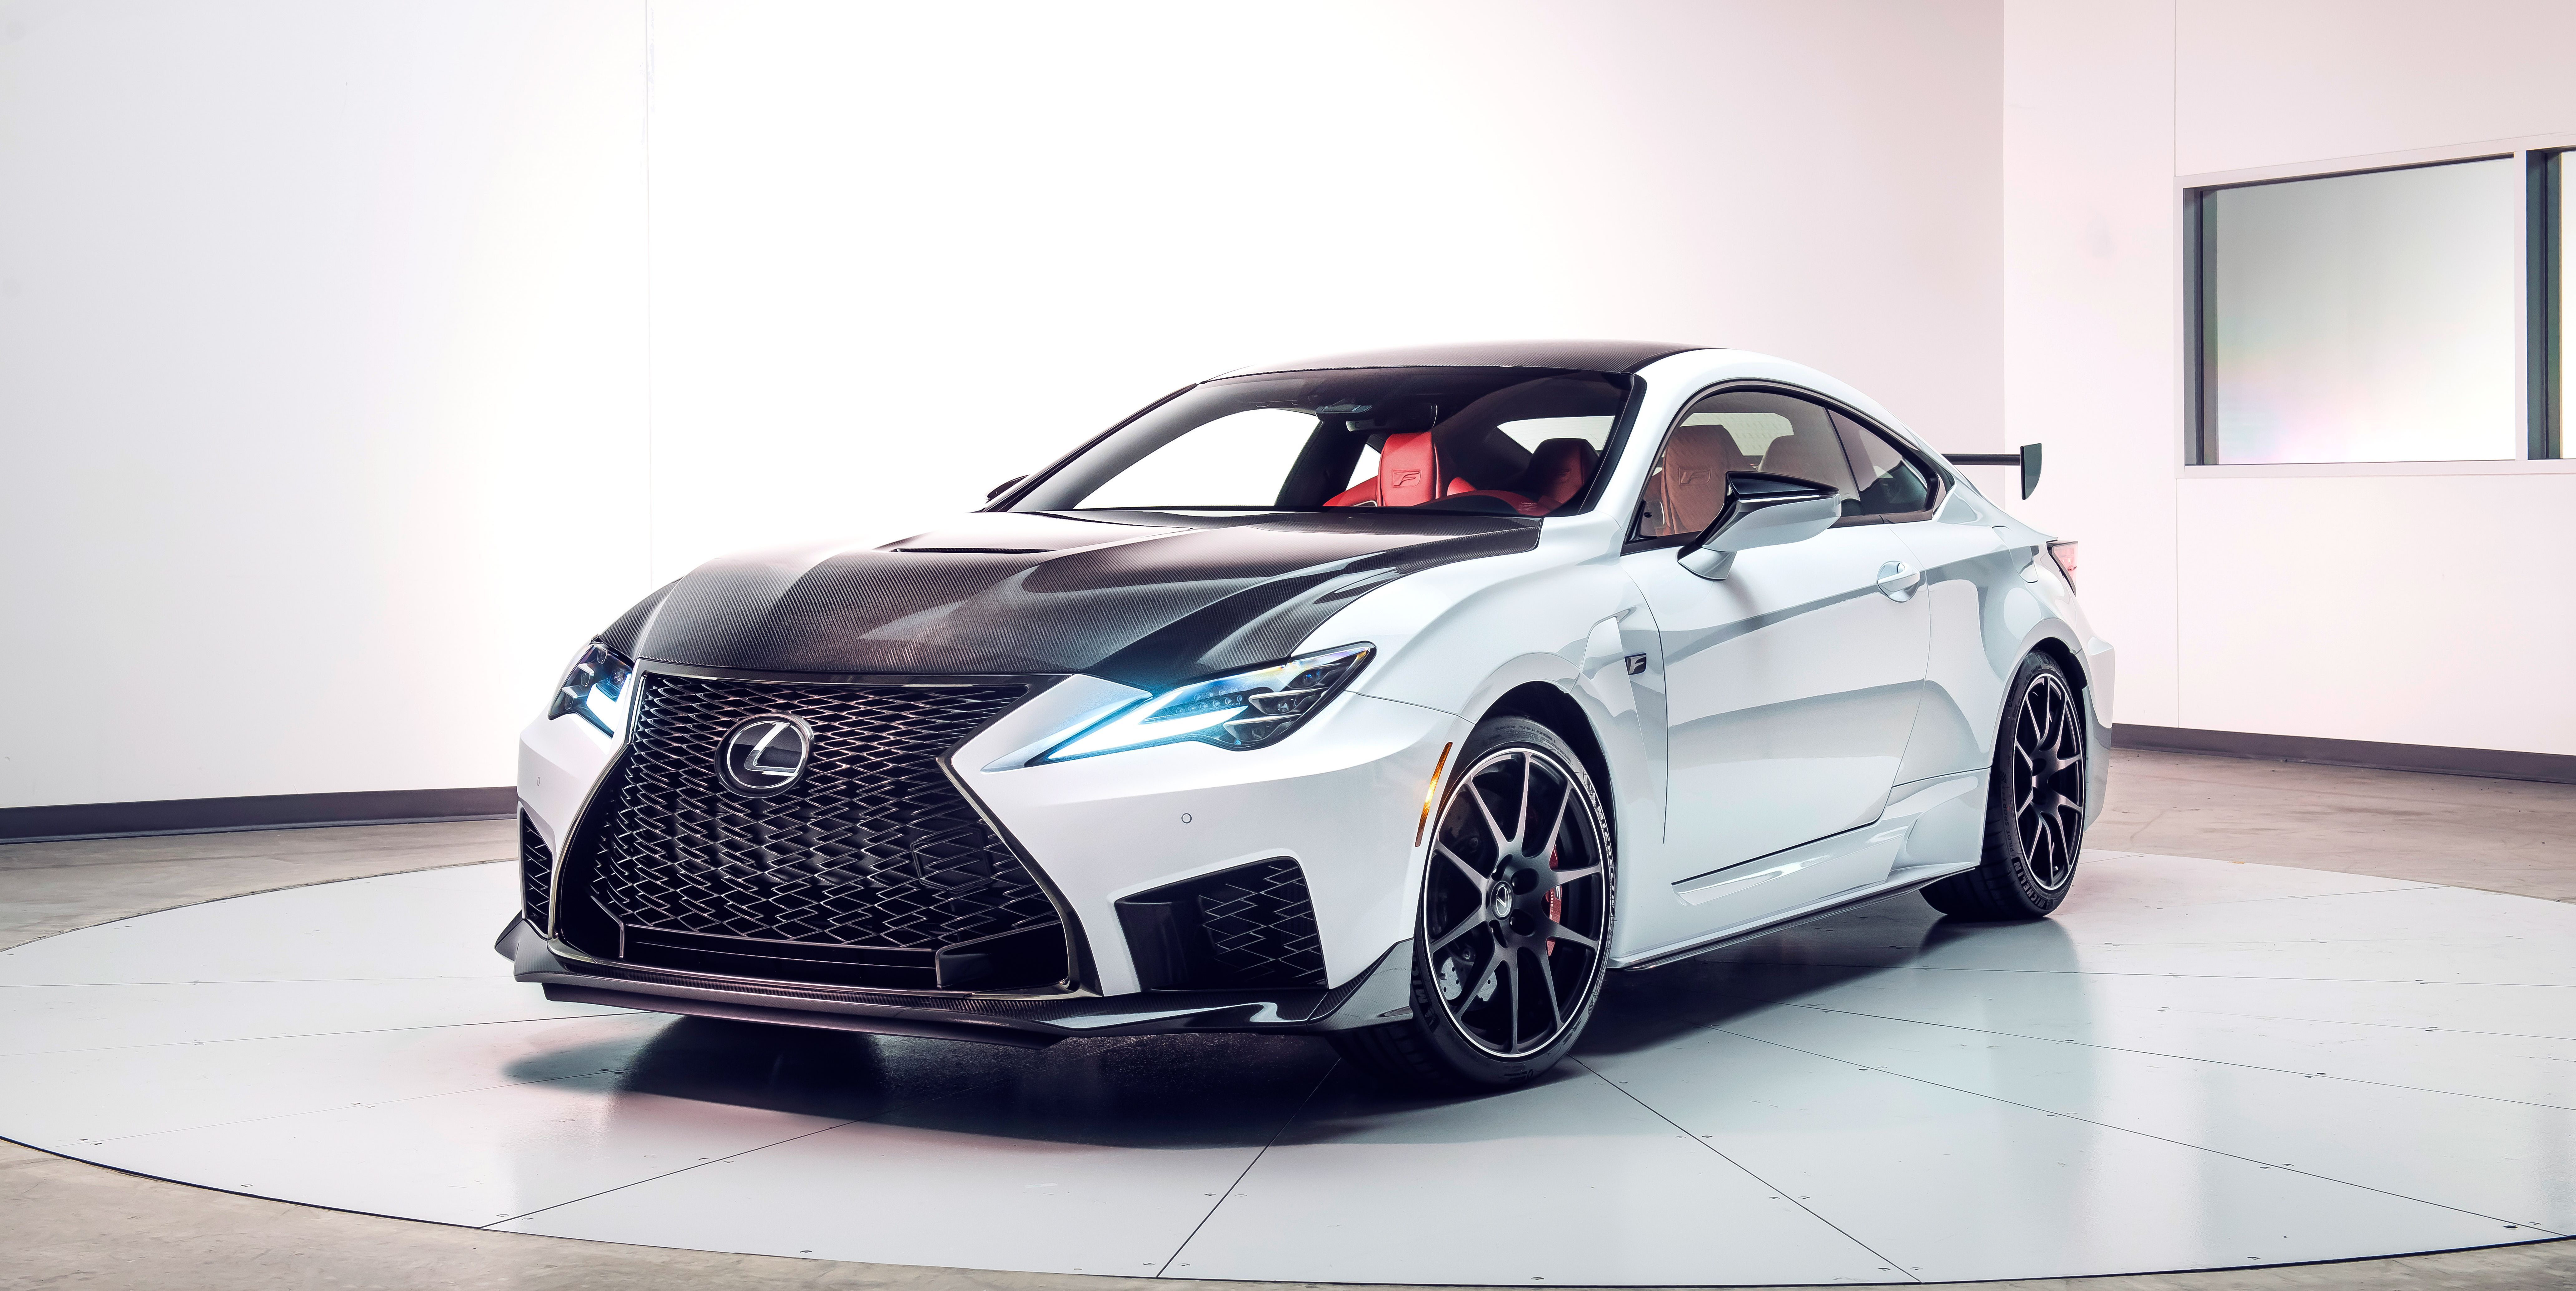 2020 Lexus Rc F Updated V8 Sports Coupe Adds A Track Edition Lexus Coupe Lexus Sports Coupe